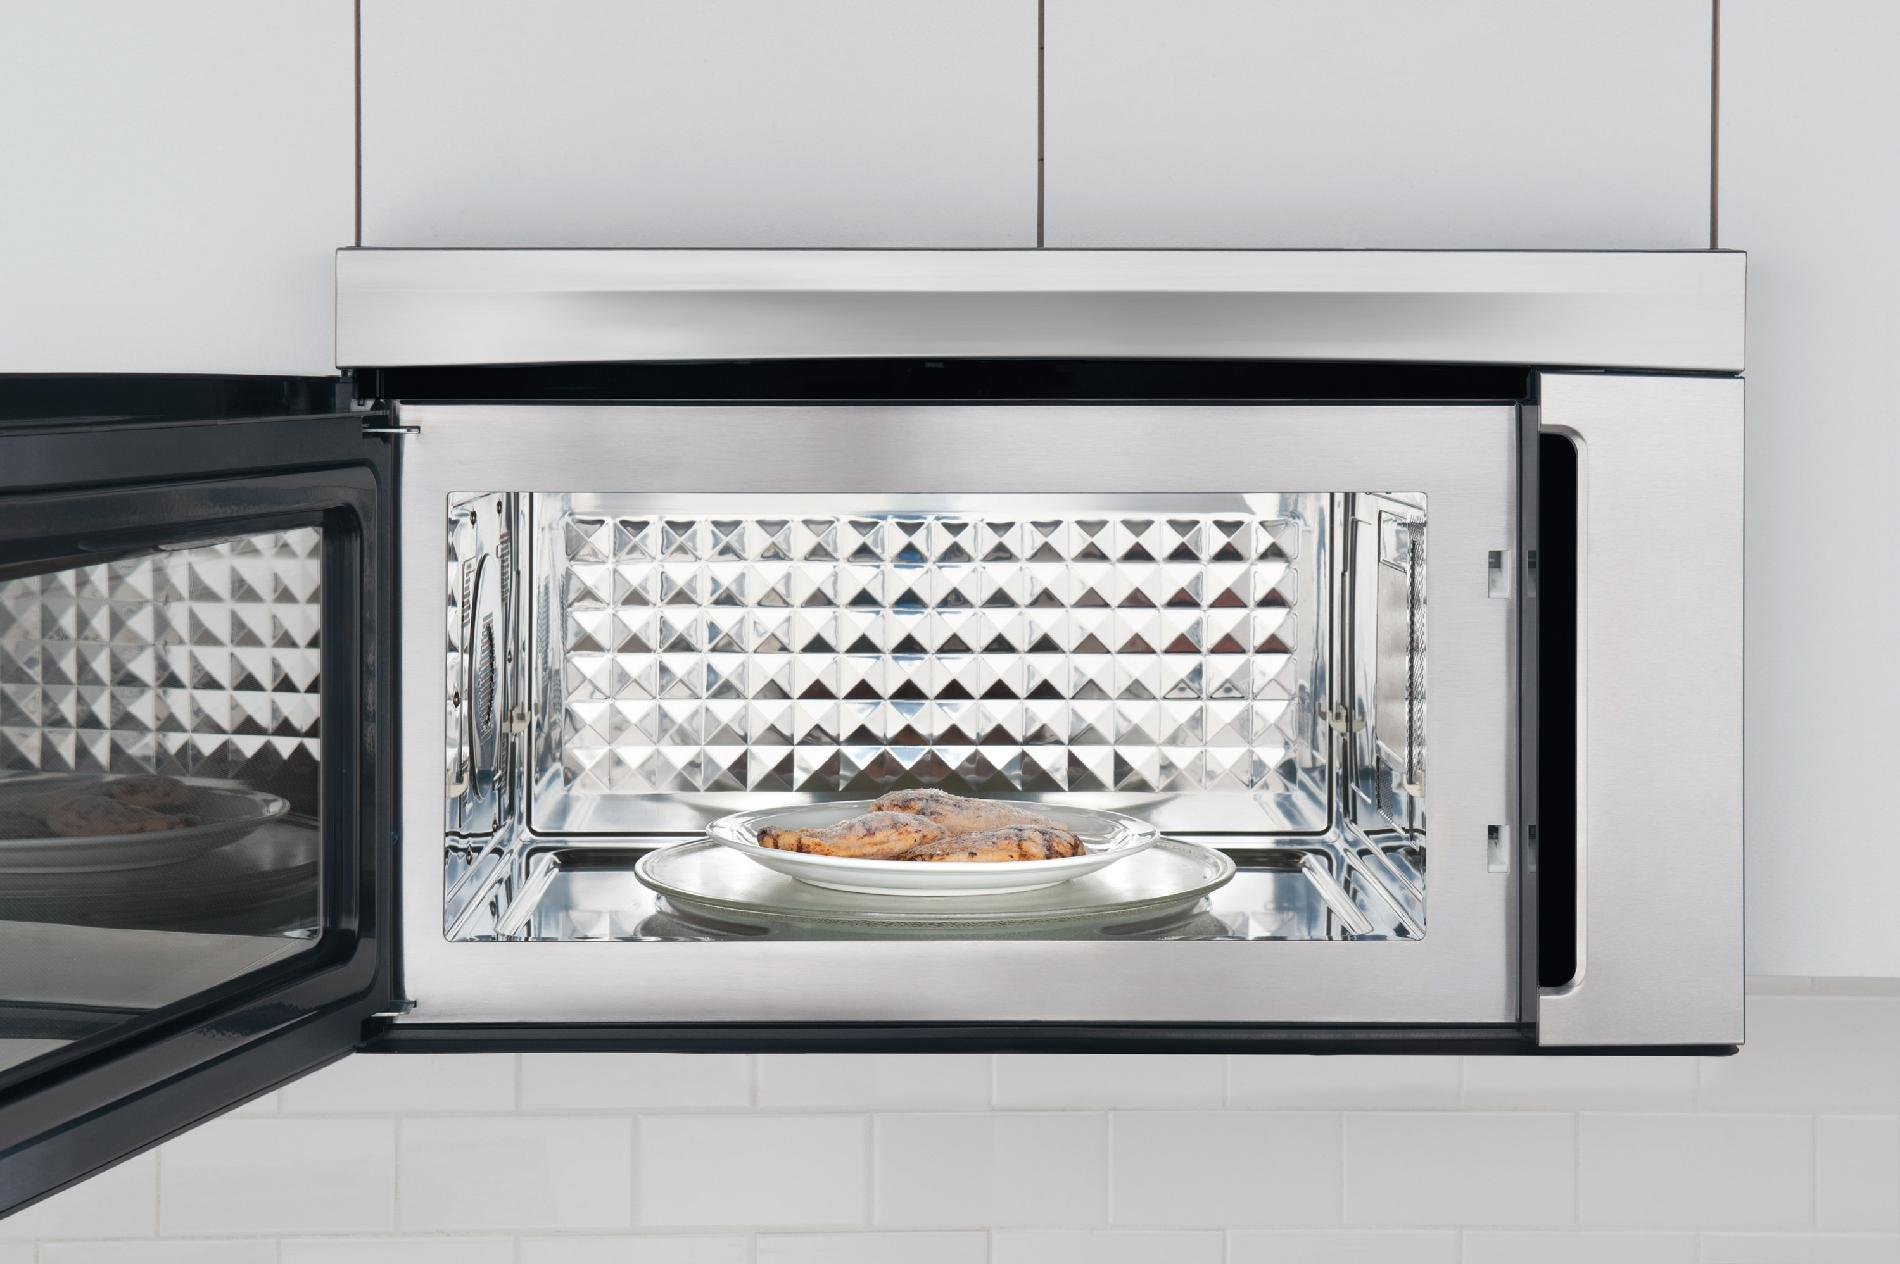 Electrolux EI30BM60MS 1.8 cu. ft. Over-the-Range Convection Microwave Oven w/ Bottom Controls - Stainless Steel